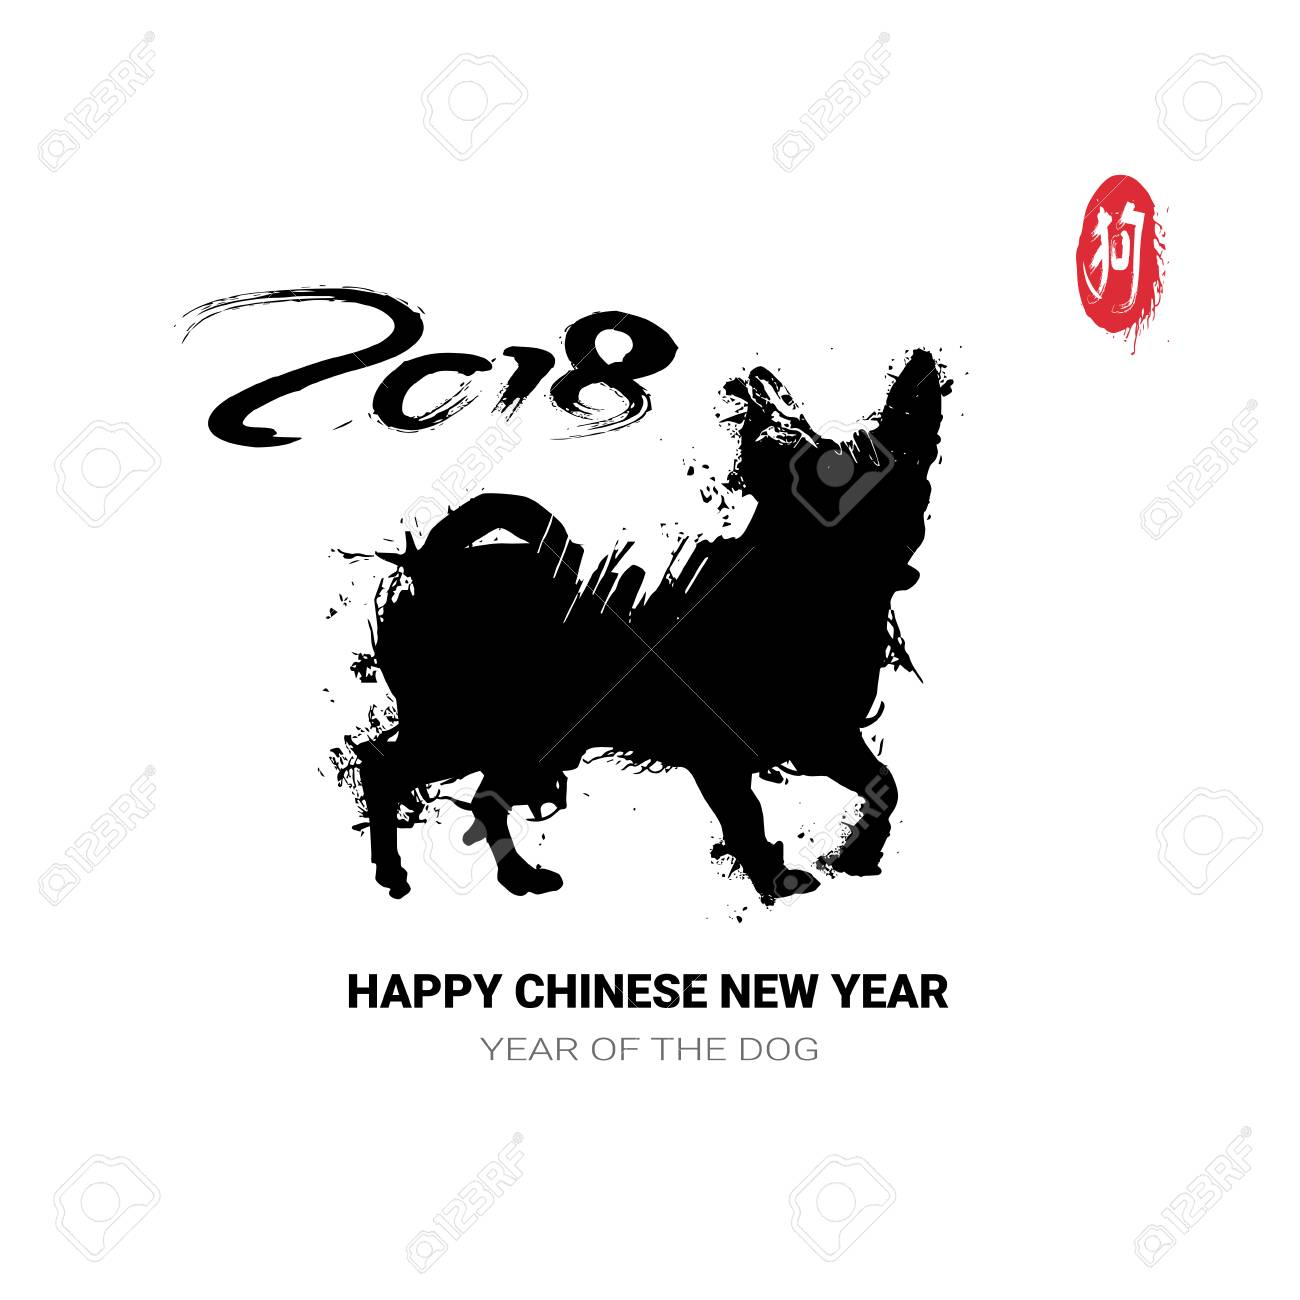 2018 Happy Chinese New Year Grunge Dog Silhouette On Holiday Greeting Card Vector Illustration Stock